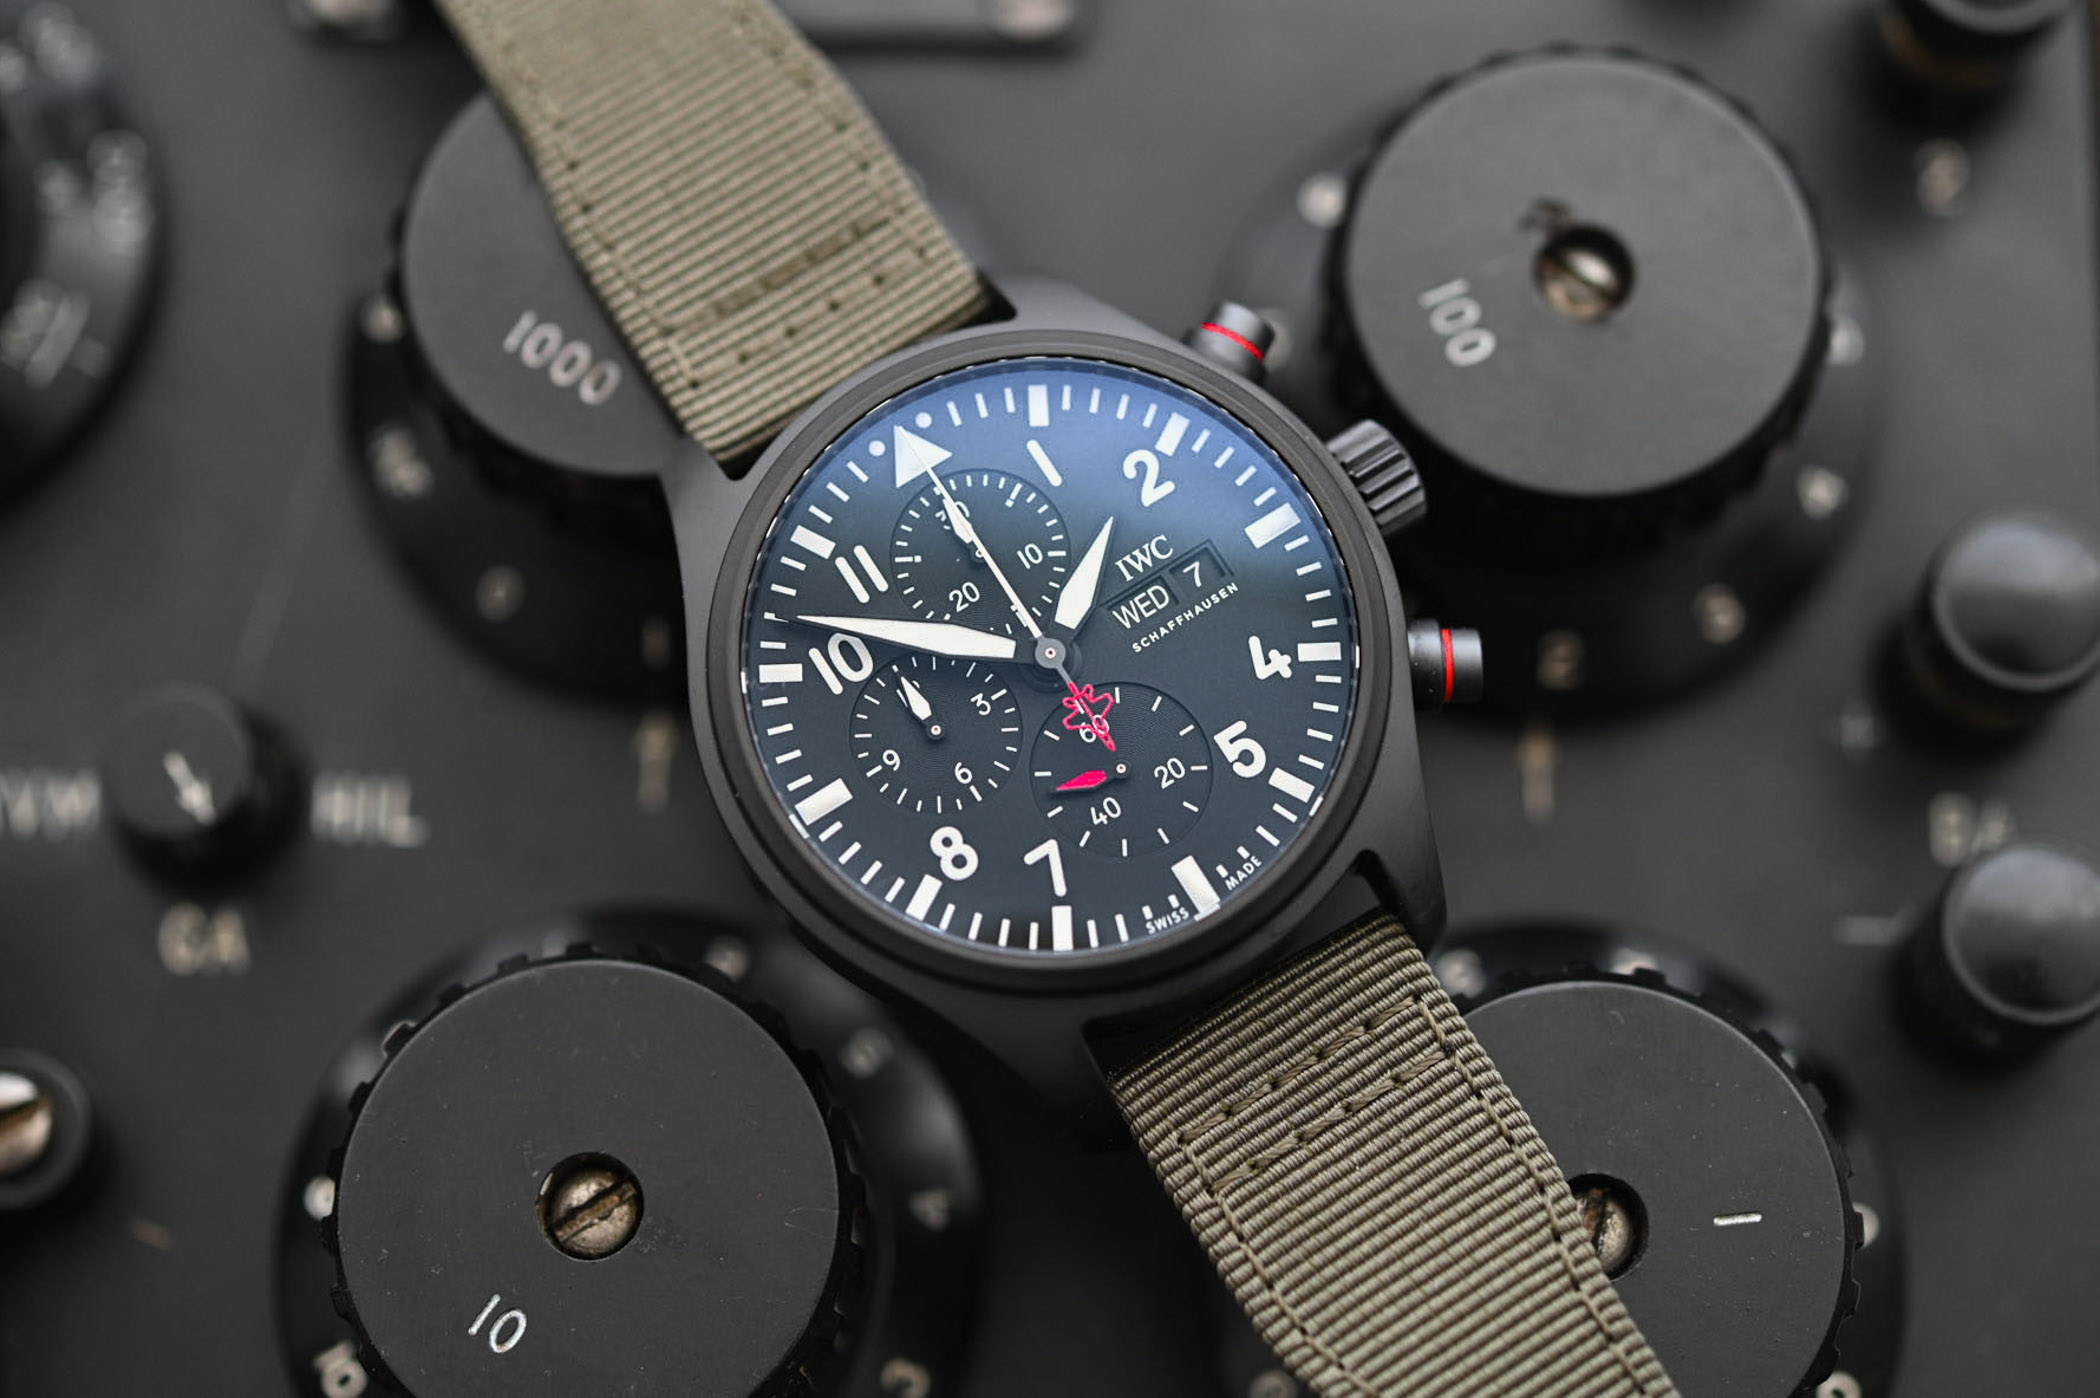 IWC Pilots Watch Chronograph TOP GUN Edition SFTI - IW389104